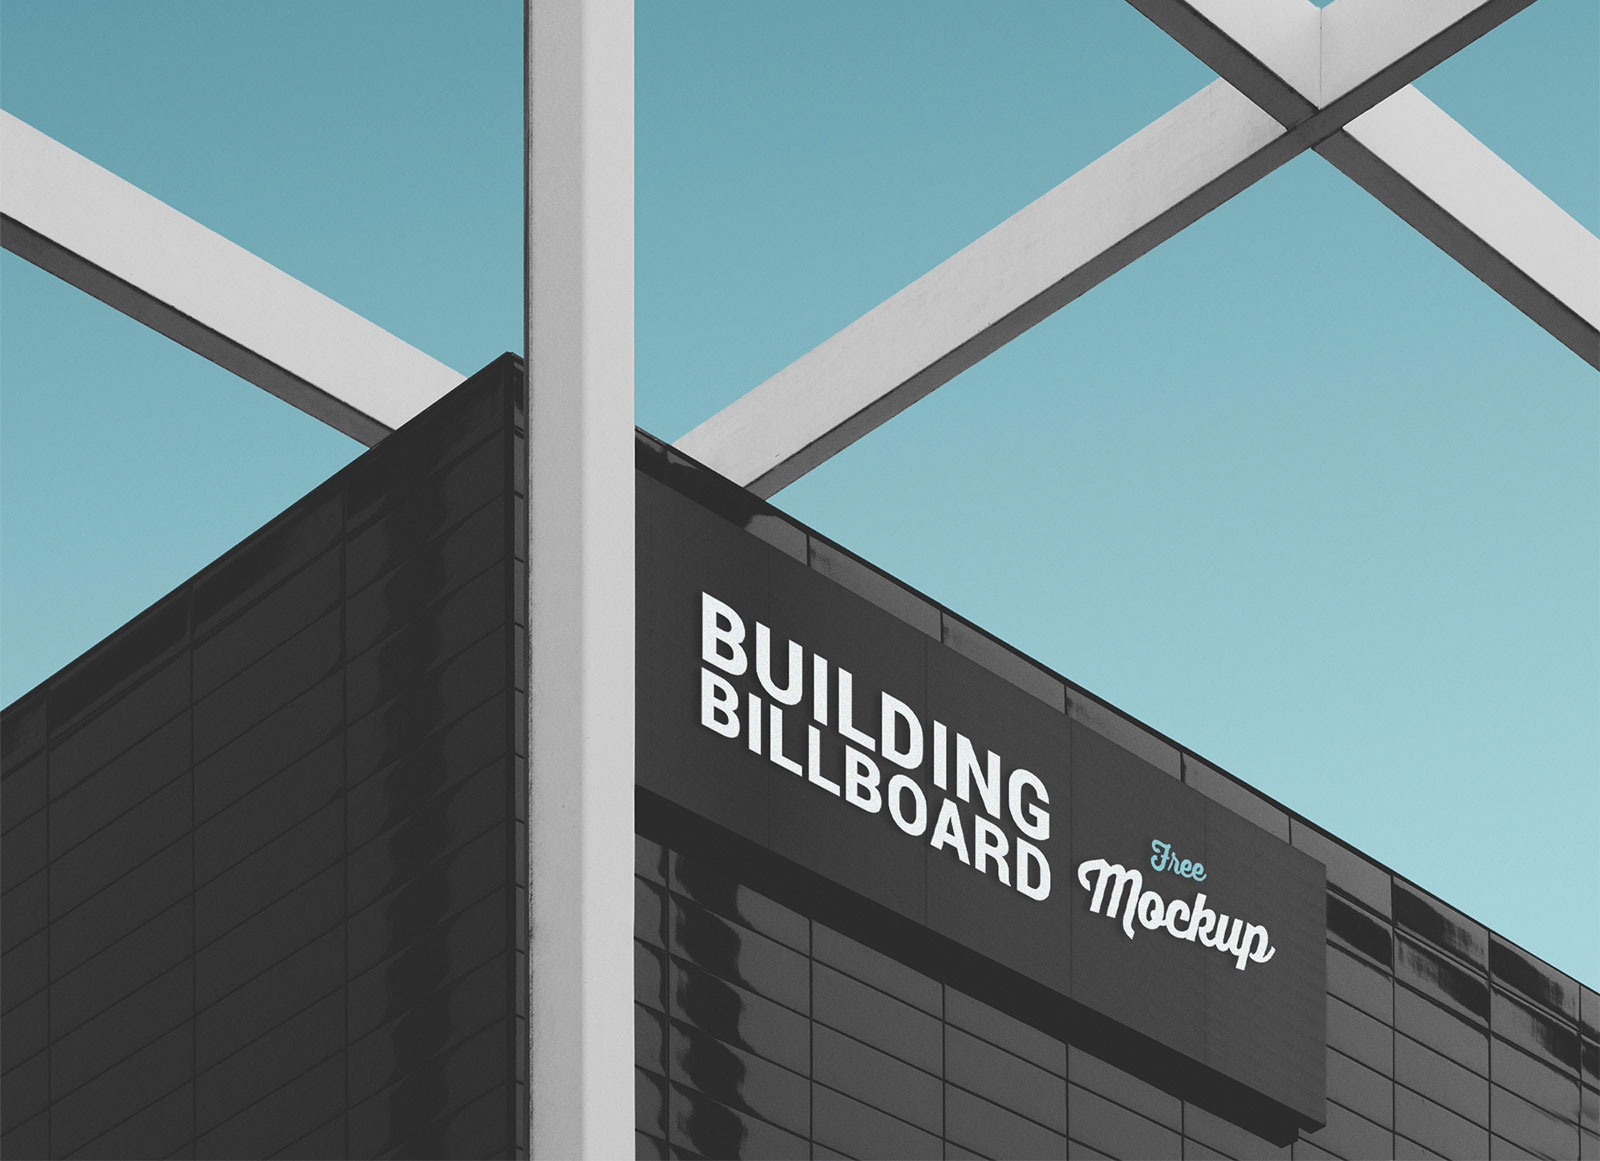 Free-Commercial-Office-Building-Billboard-Mockup-PSD